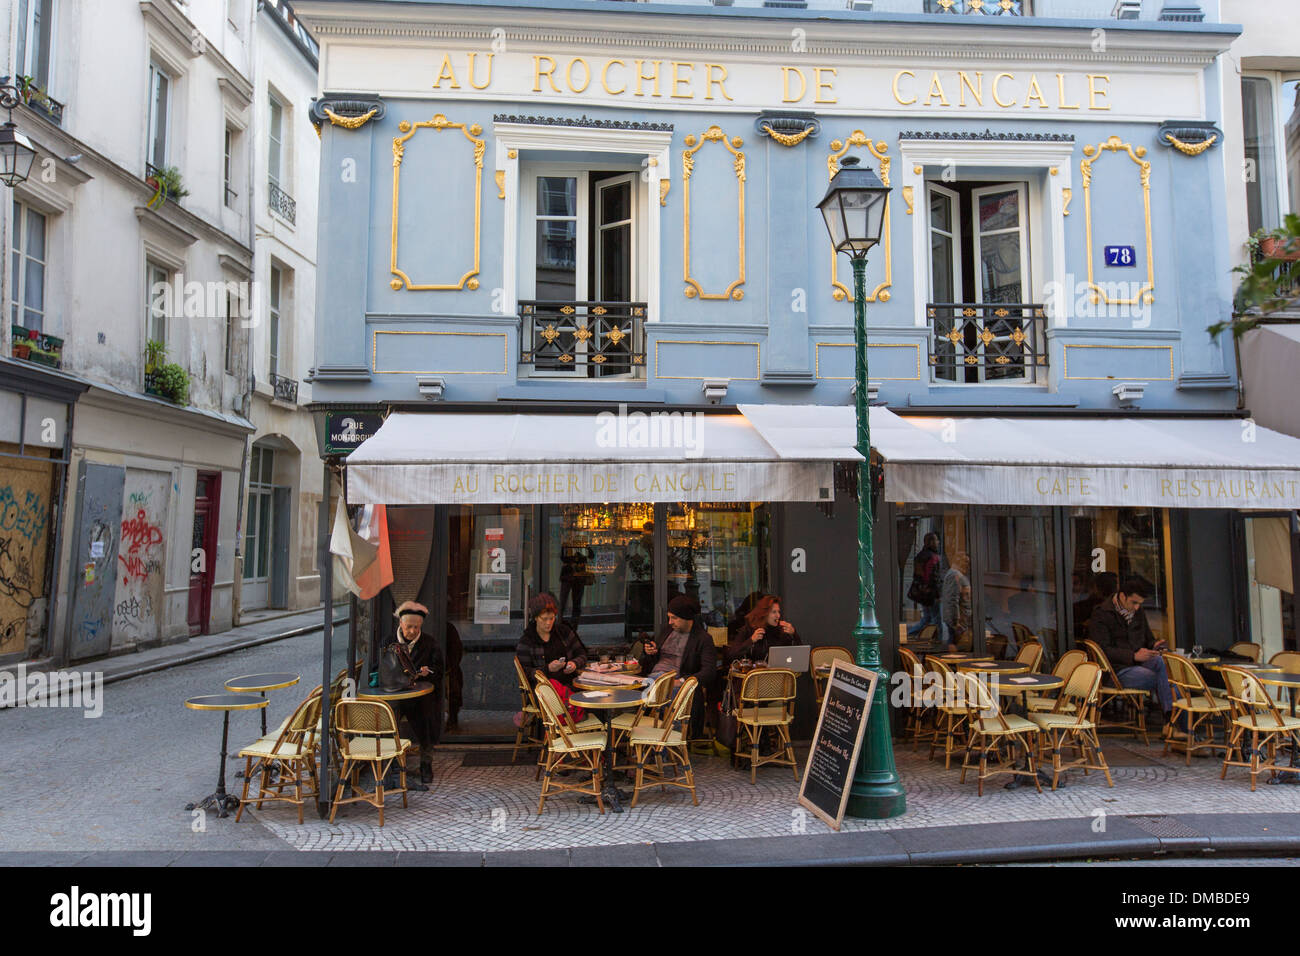 paris cafe chairs modern outdoor lounge chair the au rocher de cancale on rue montorgueil in paris, france stock photo, royalty free ...